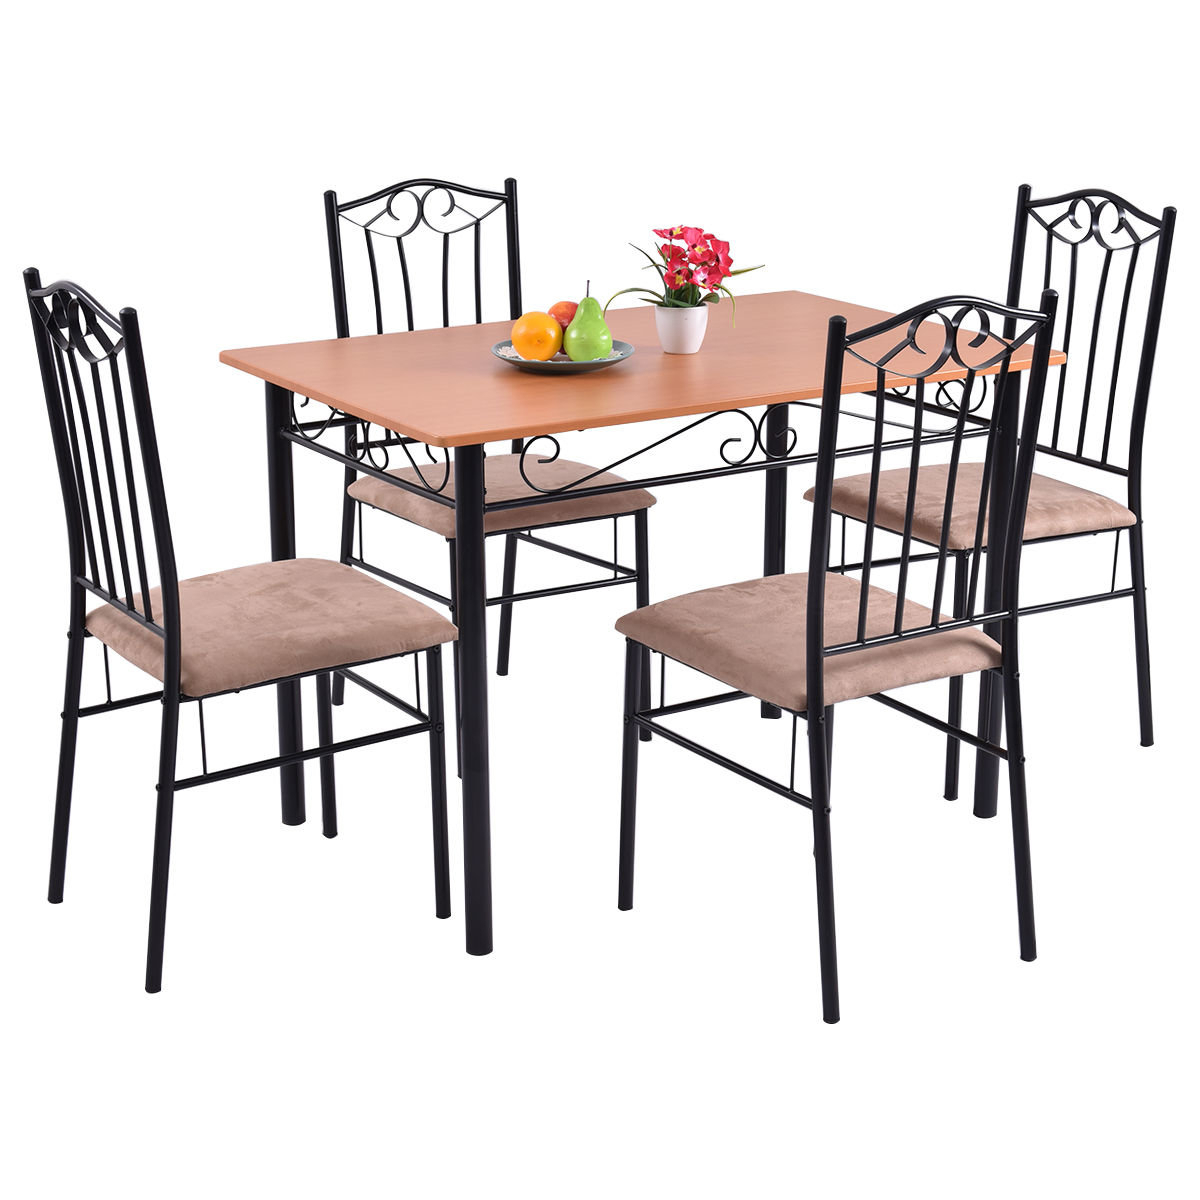 Turnalar 5 Piece Dining Sets Within Most Up To Date Rossi 5 Piece Dining Set (Gallery 10 of 20)